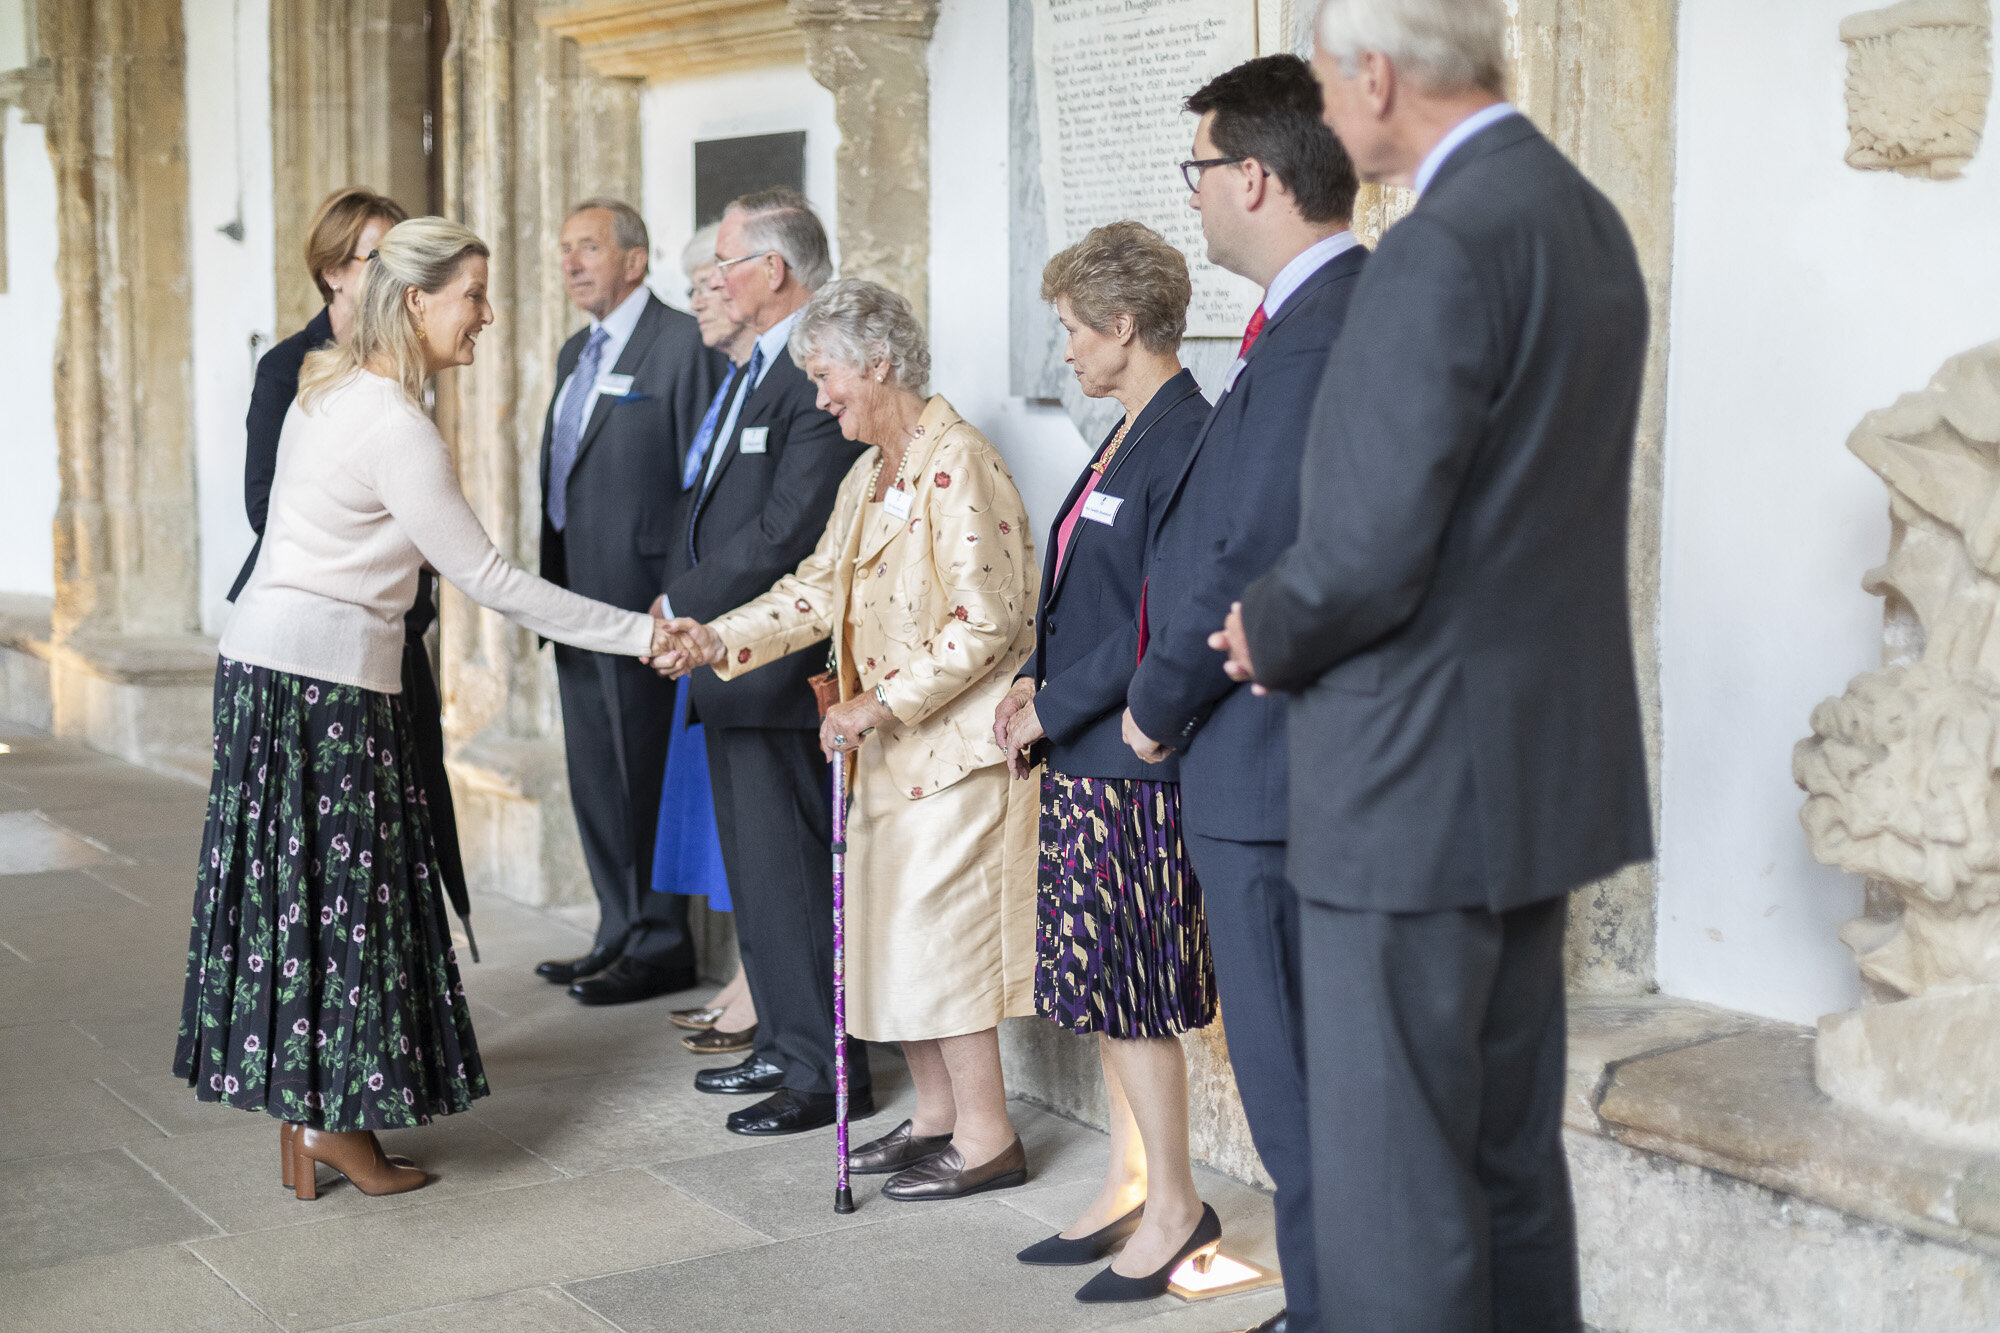 The Countess of Wessex visits Wells Cathedral Chorister Trust - September 2019 13.jpg